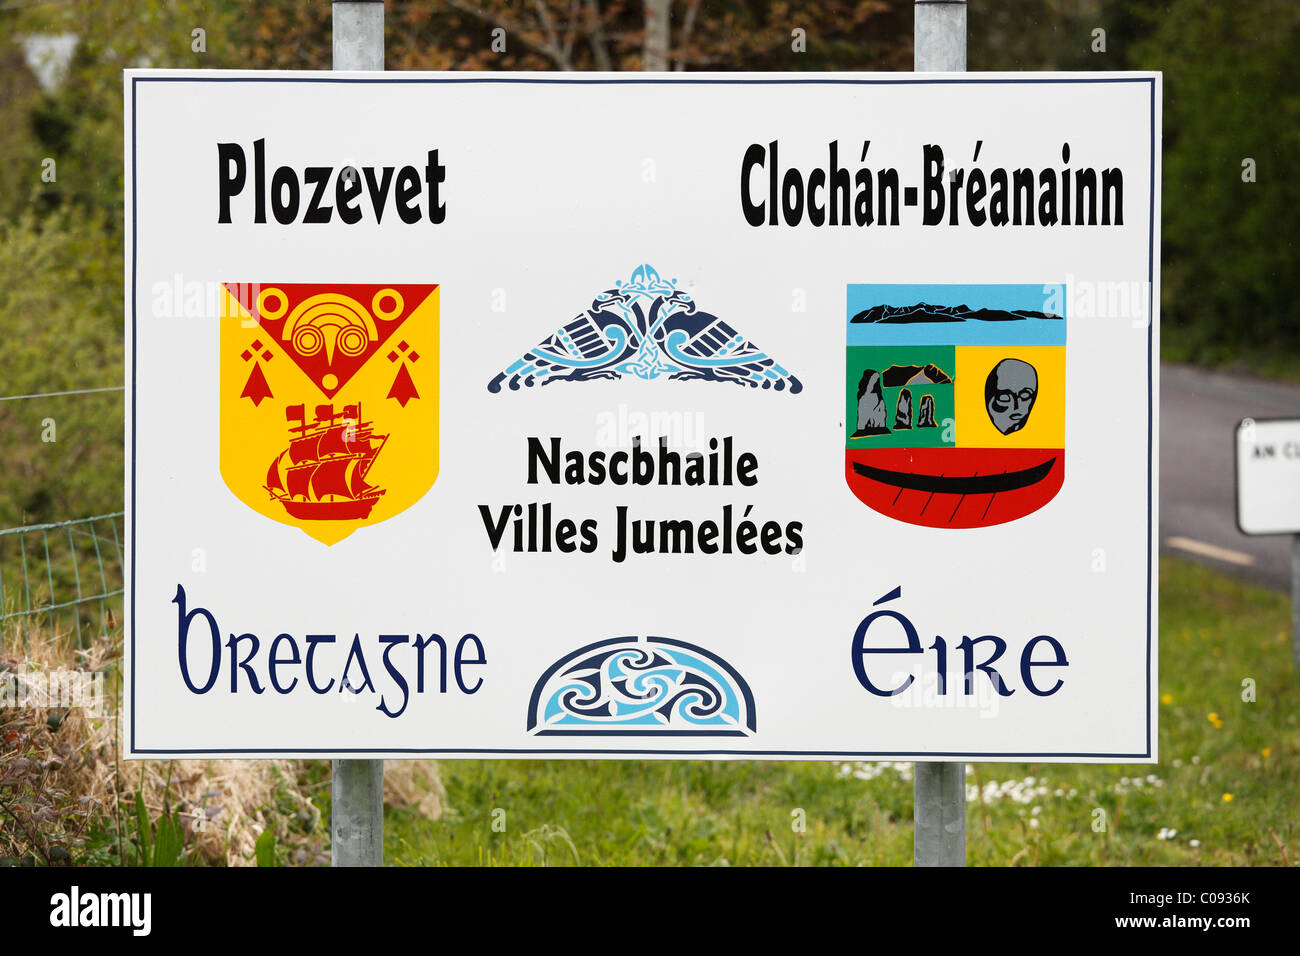 Sign in Irish and French for twin cities Plozevet in Brittany and Brandon-Cloghan in Ireland, Dingle Peninsula, - Stock Image